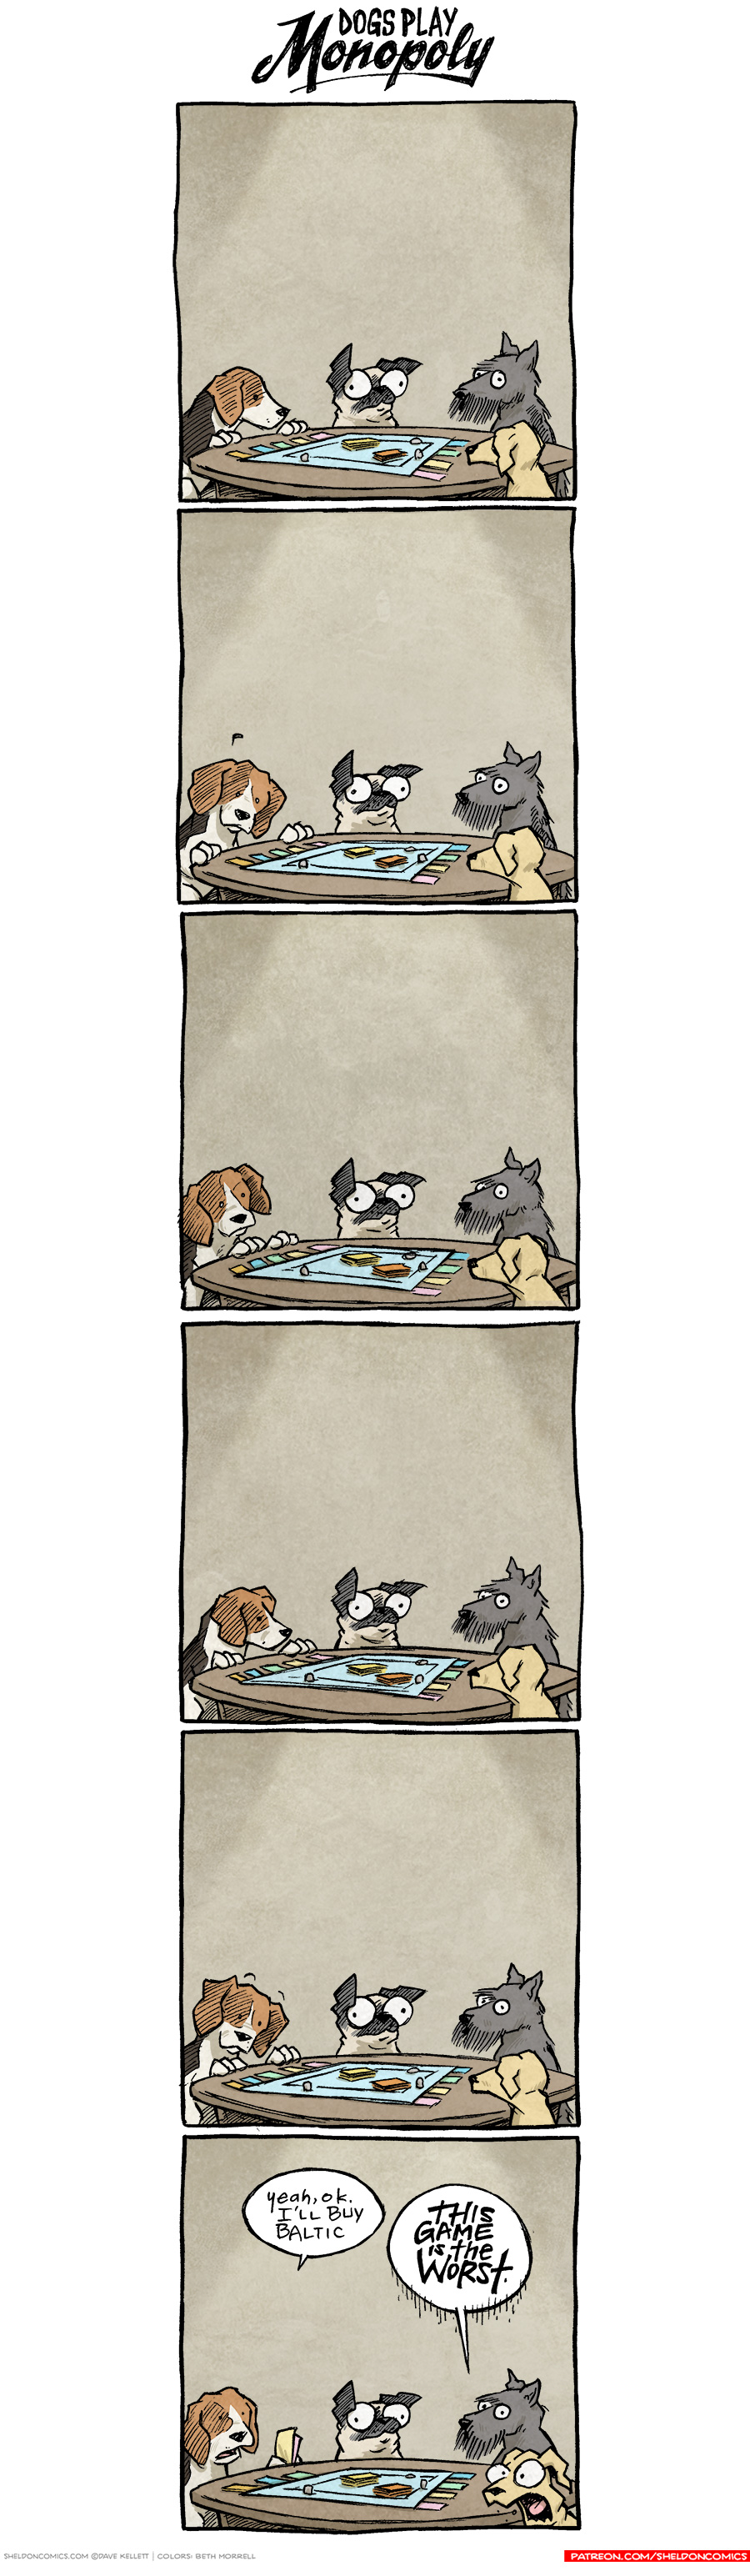 strip for November / 15 / 2017 - Dogs Play Monopoly